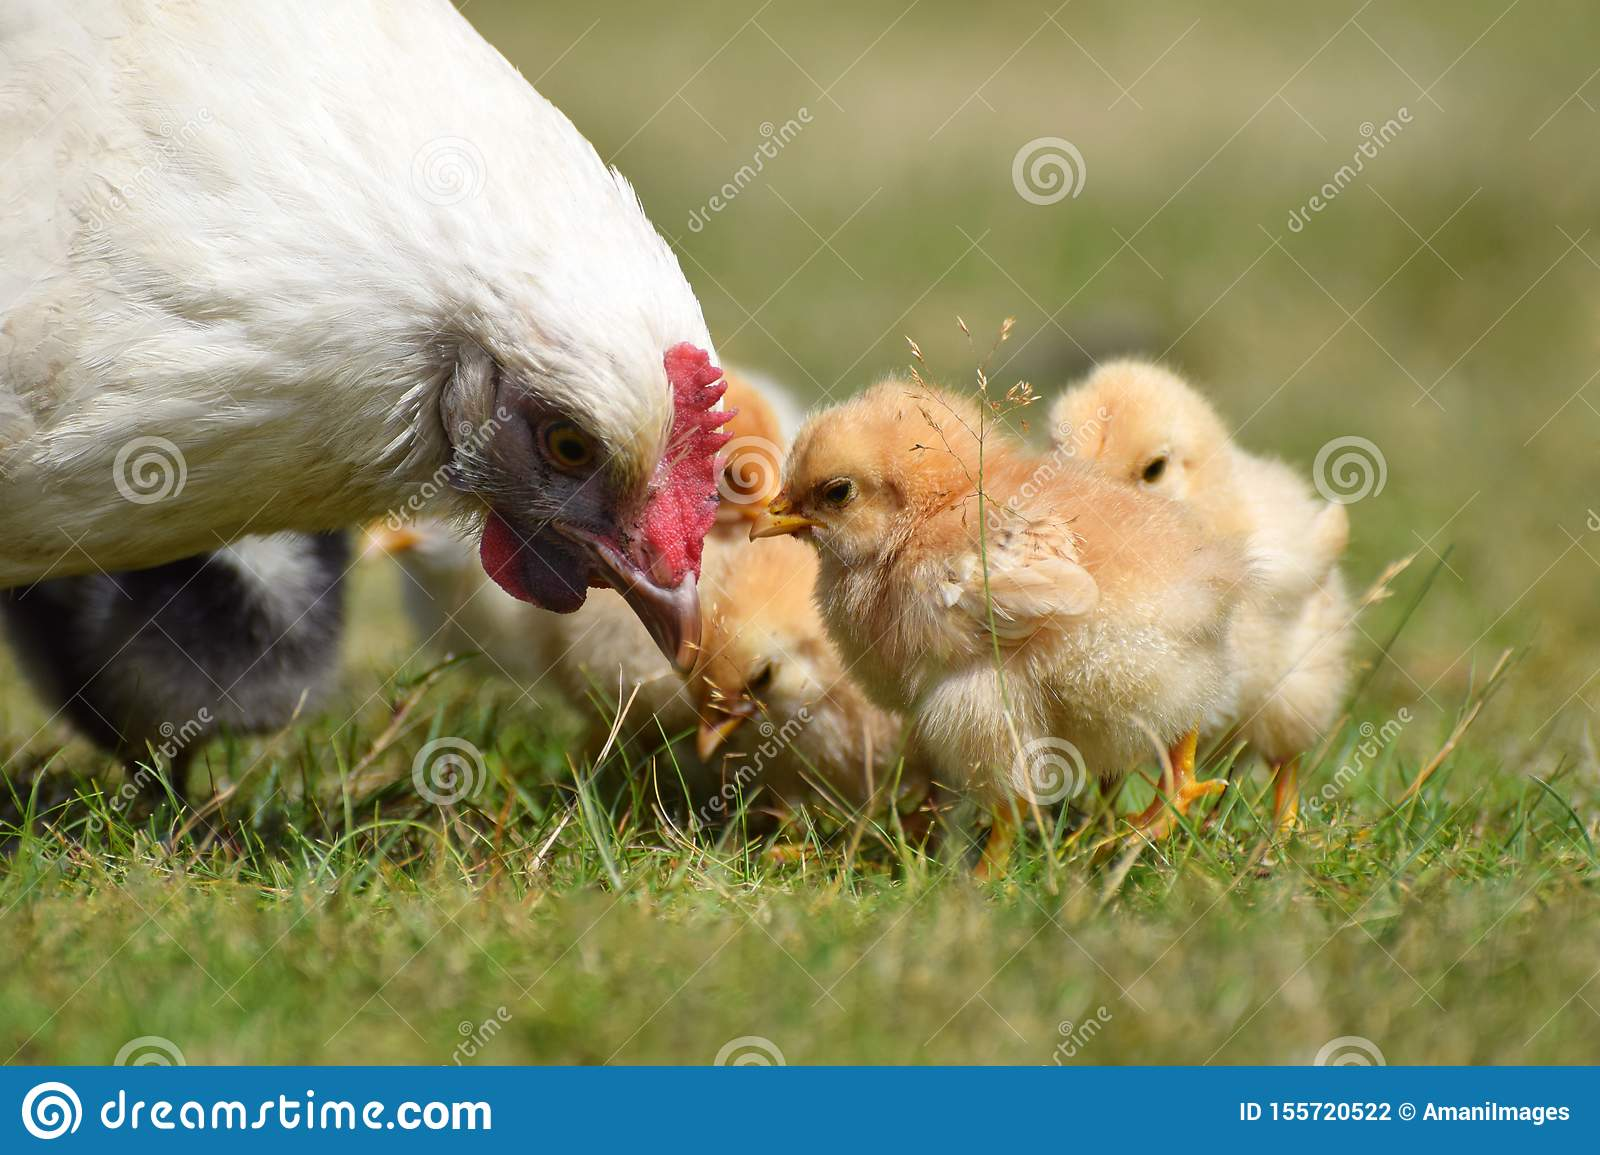 Mother hen with baby chicks